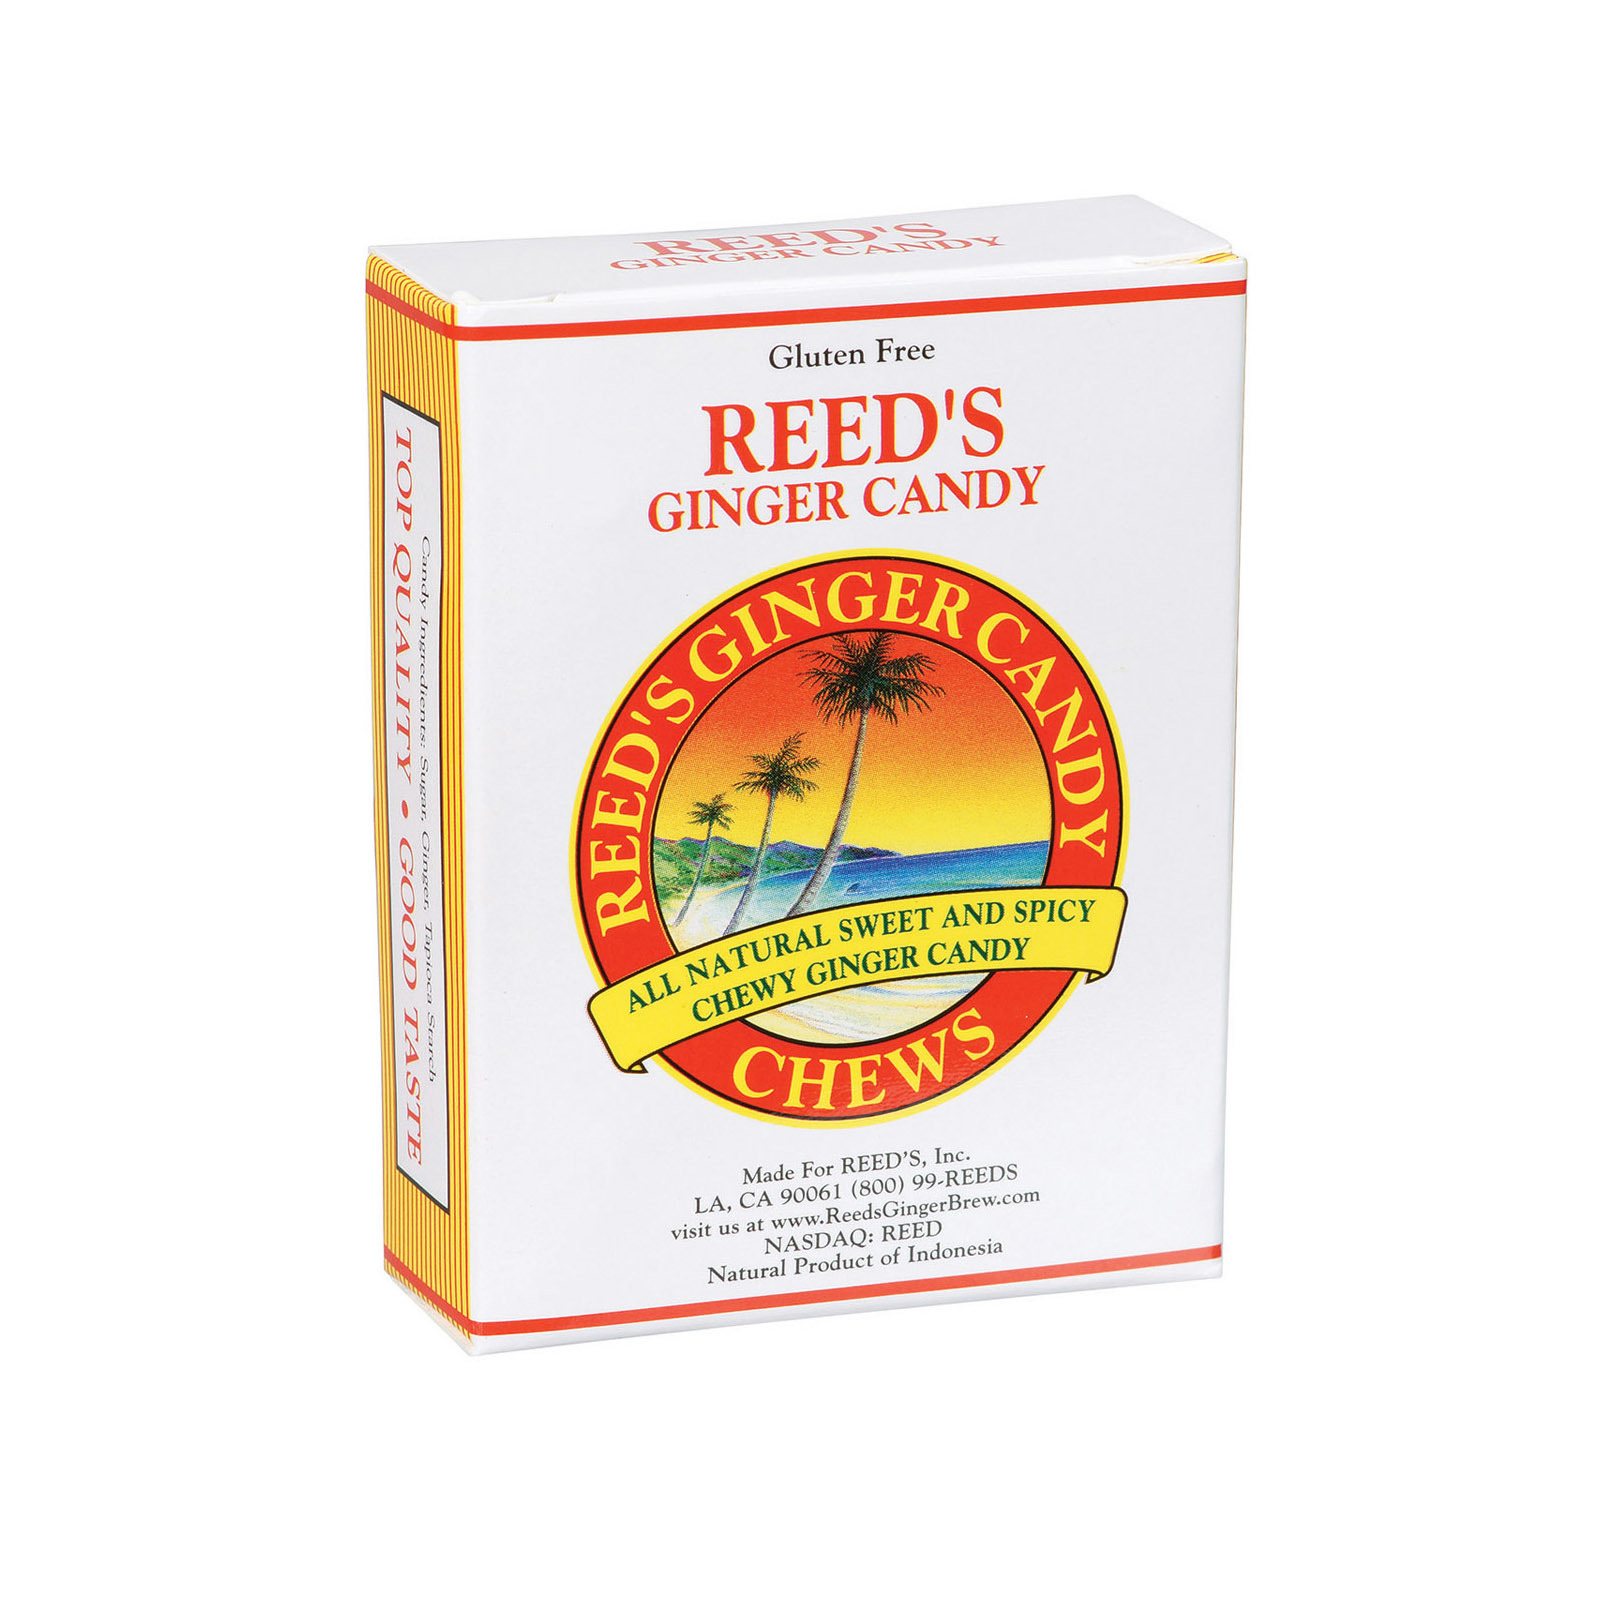 Reed's Ginger Beer Chewy Ginger Candy Rolls - Case of 20 - 2 oz